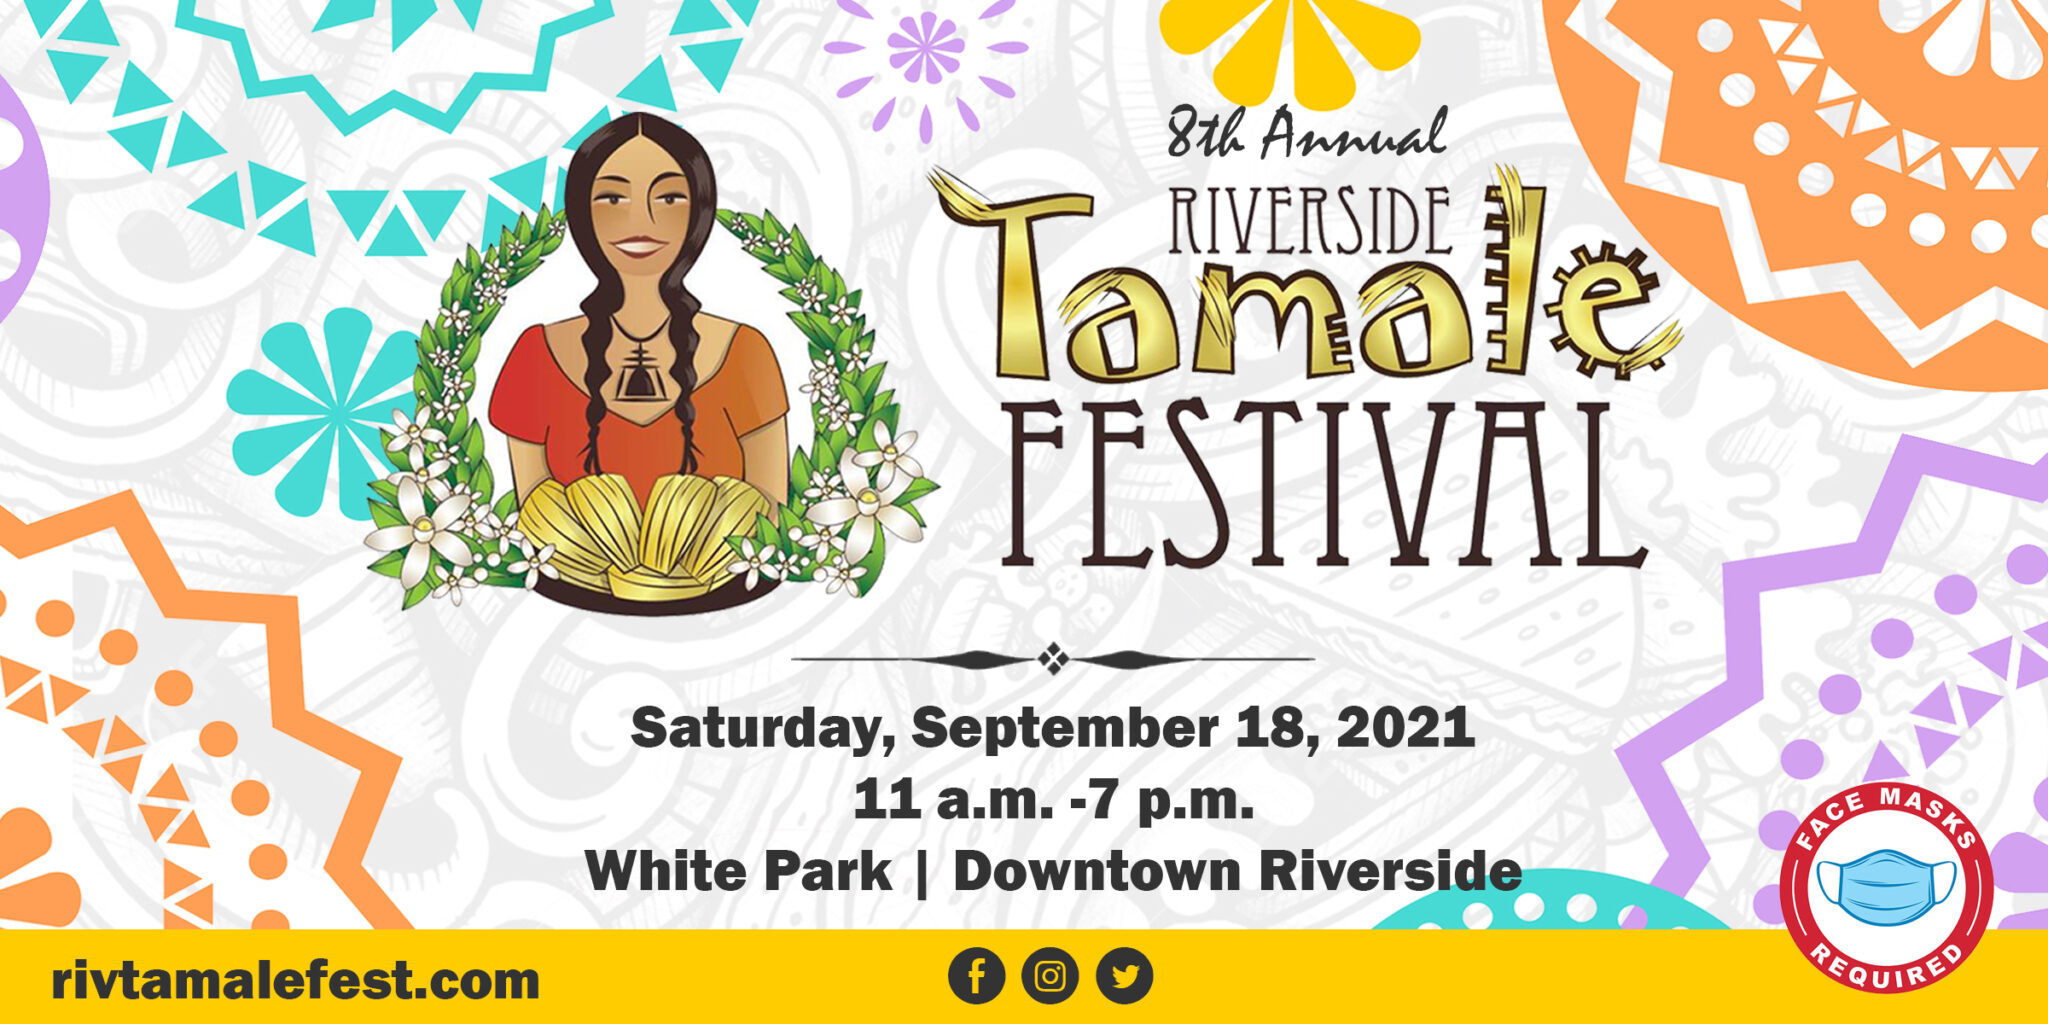 City of Riverside,CA @riversidecagov · 2h We know it's #TacoTuesday and all, but we thought we'd let you know that the @RivTamaleFest is back at White Park (3936 Chestnut St, Riverside, CA 92501) - Saturday, September 18th from 11am - 7pm. Get your tickets now at: http://rivtamalefest.com #ILoveRiverside